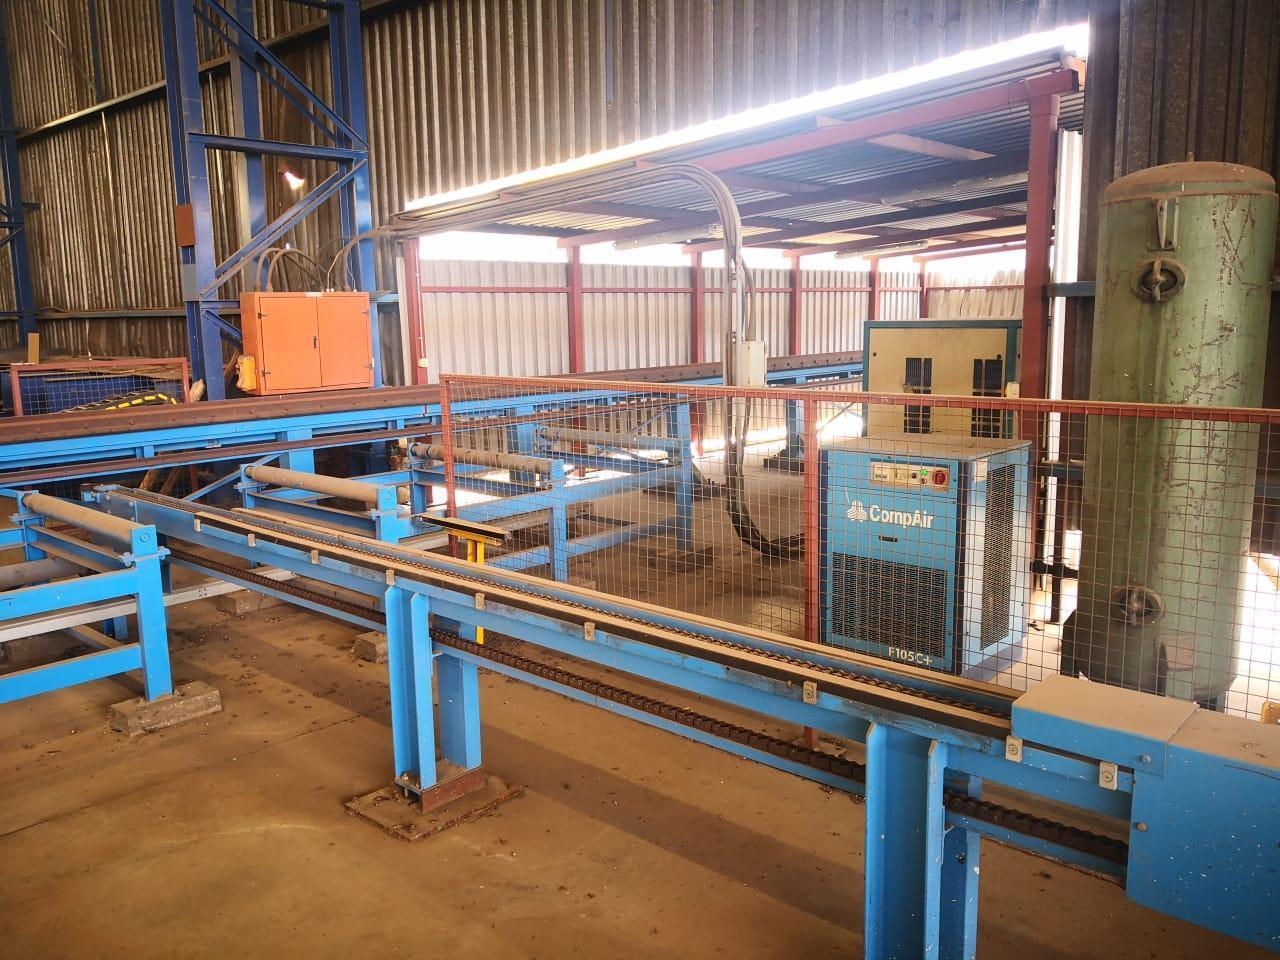 Ficep Drilling & Sawing Line Model 1203 DFB